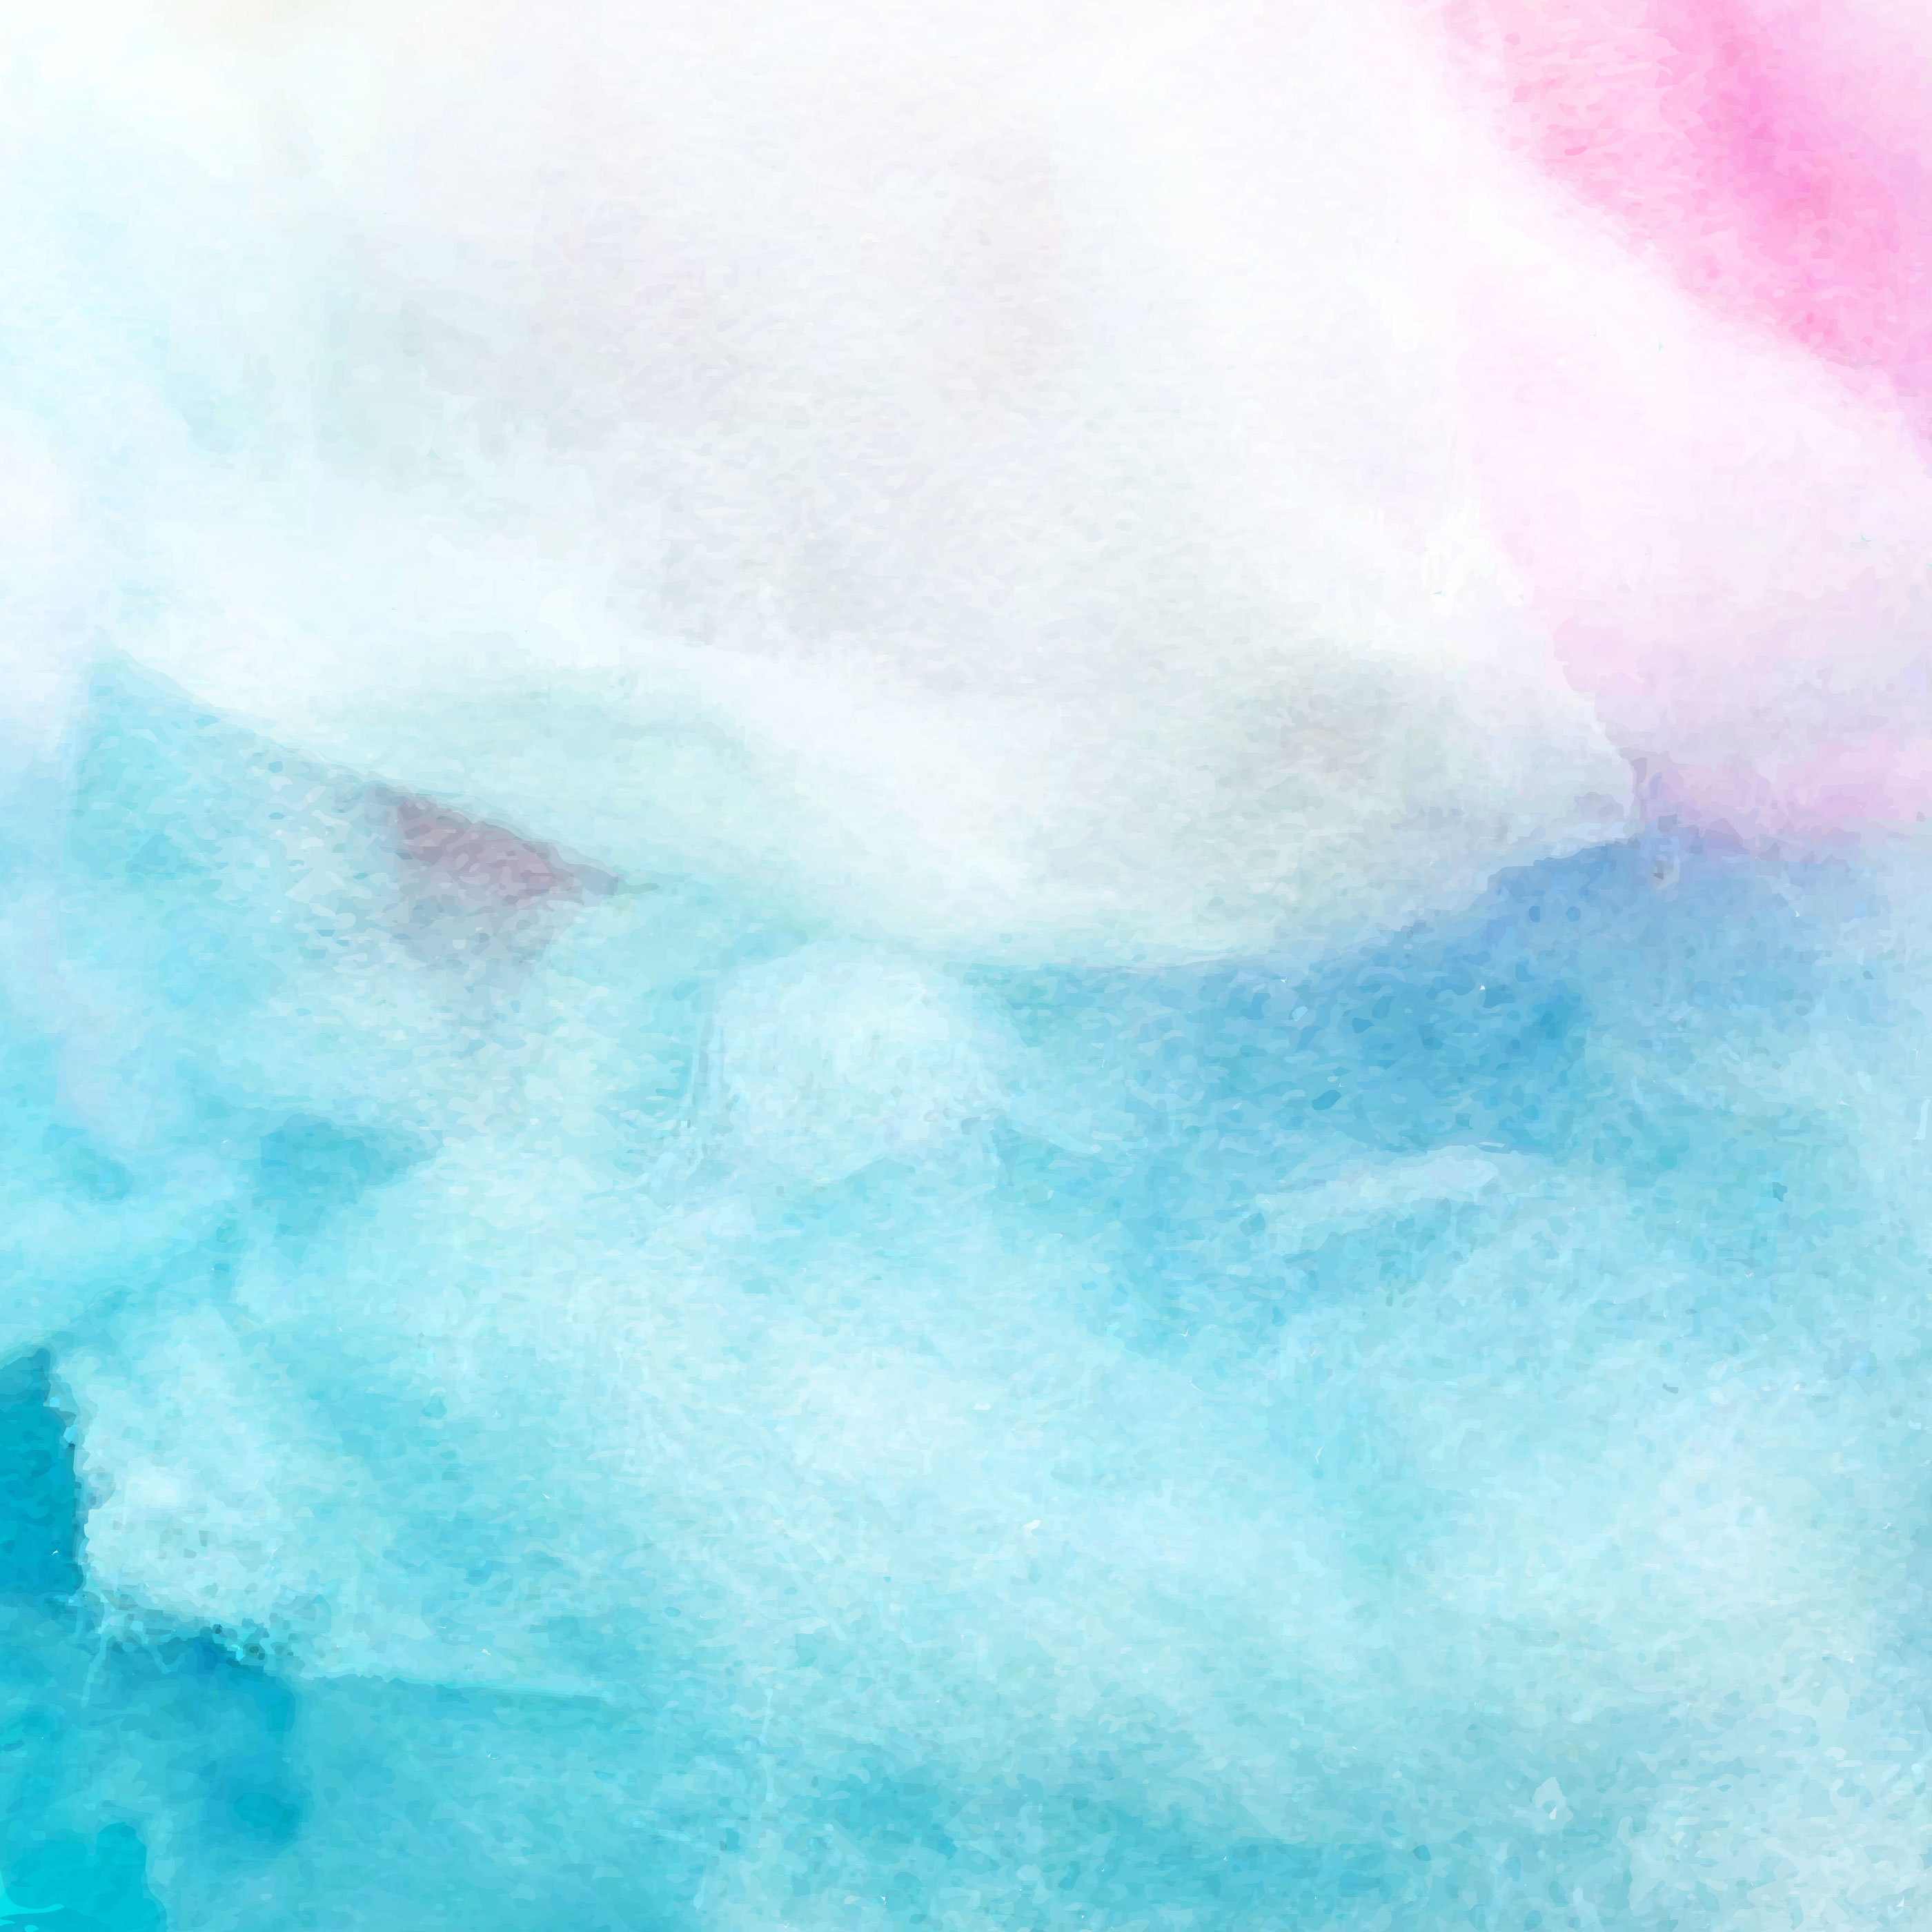 Pastel Watercolor Vector Background Download Free